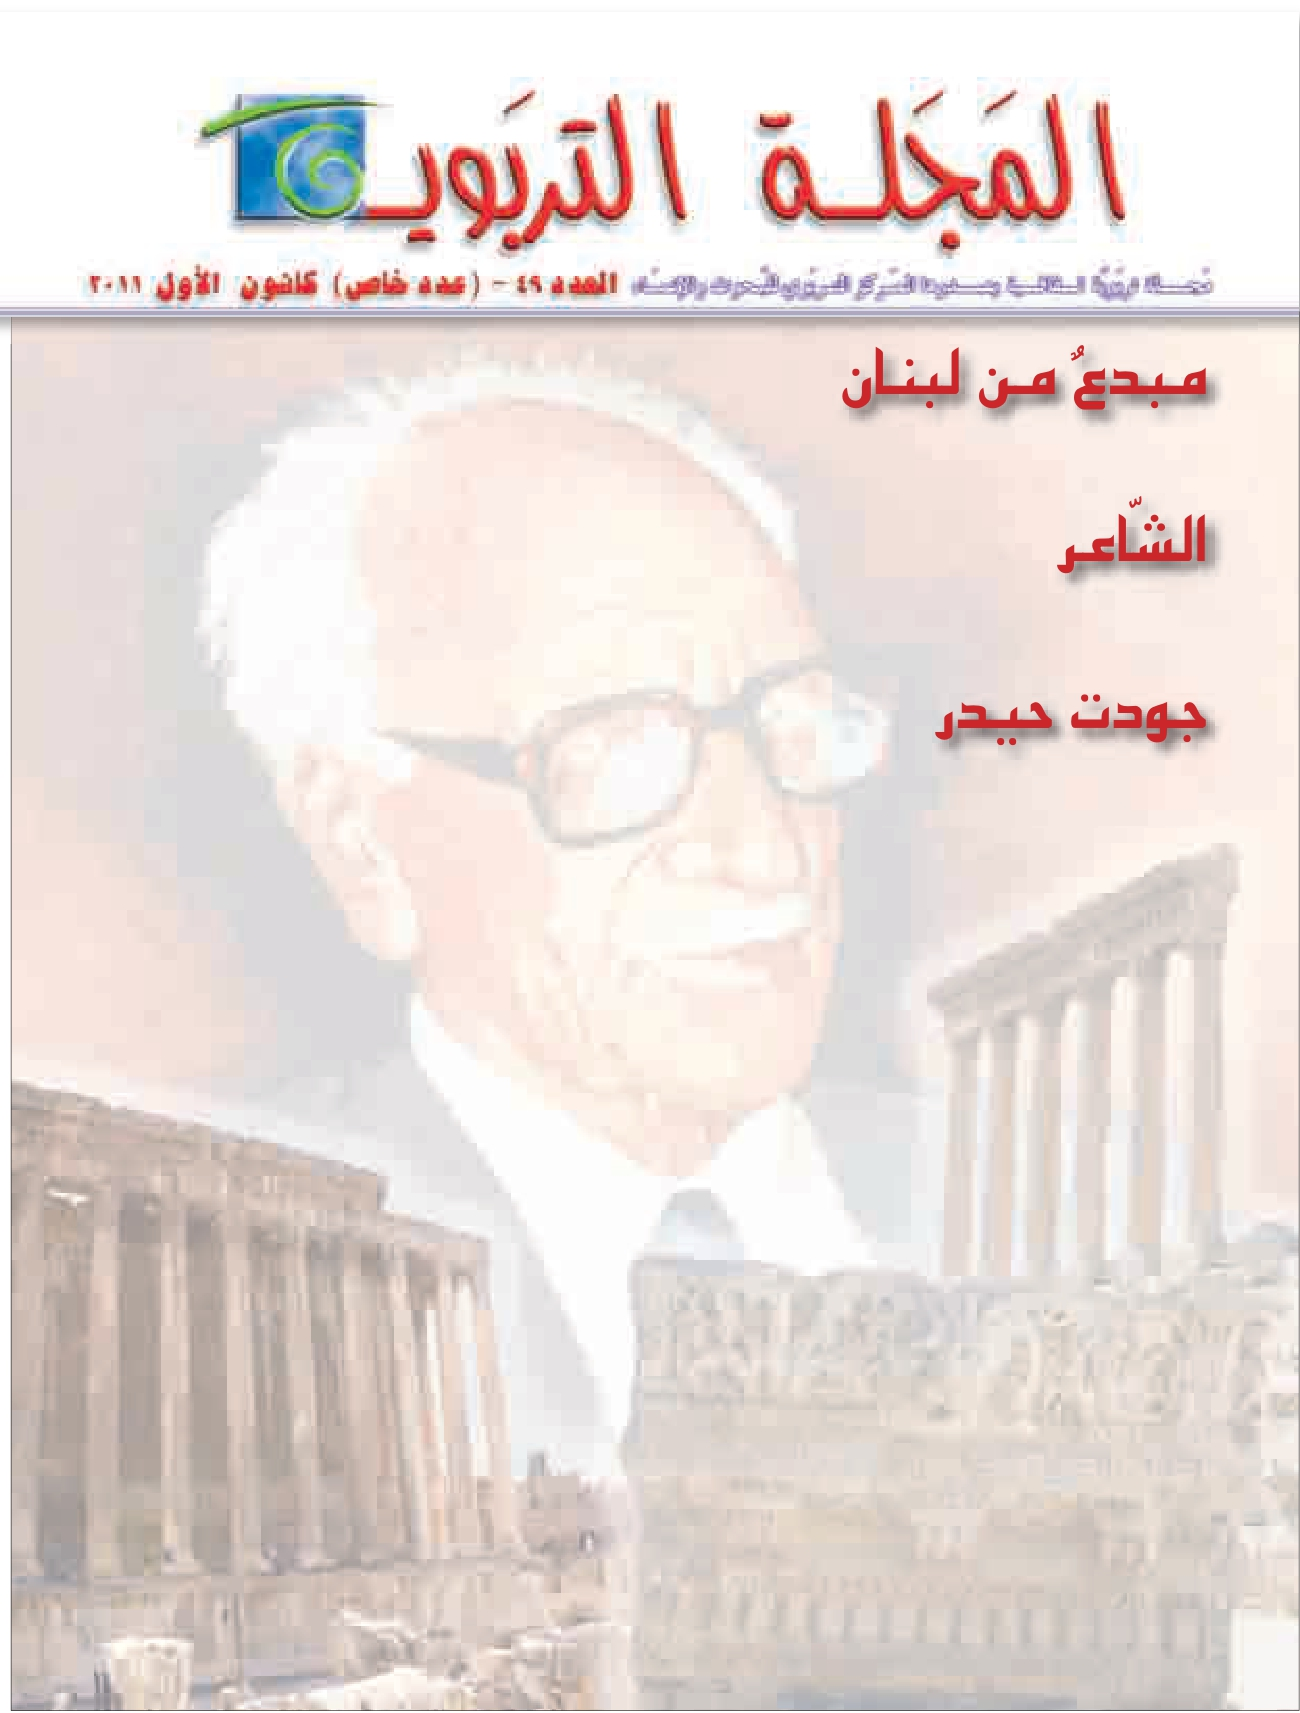 """The Poet Jawdat Haydar: An Outstanding Talent From Lebanon"", The Educational Magazine, Special Issue, Dec 2011."